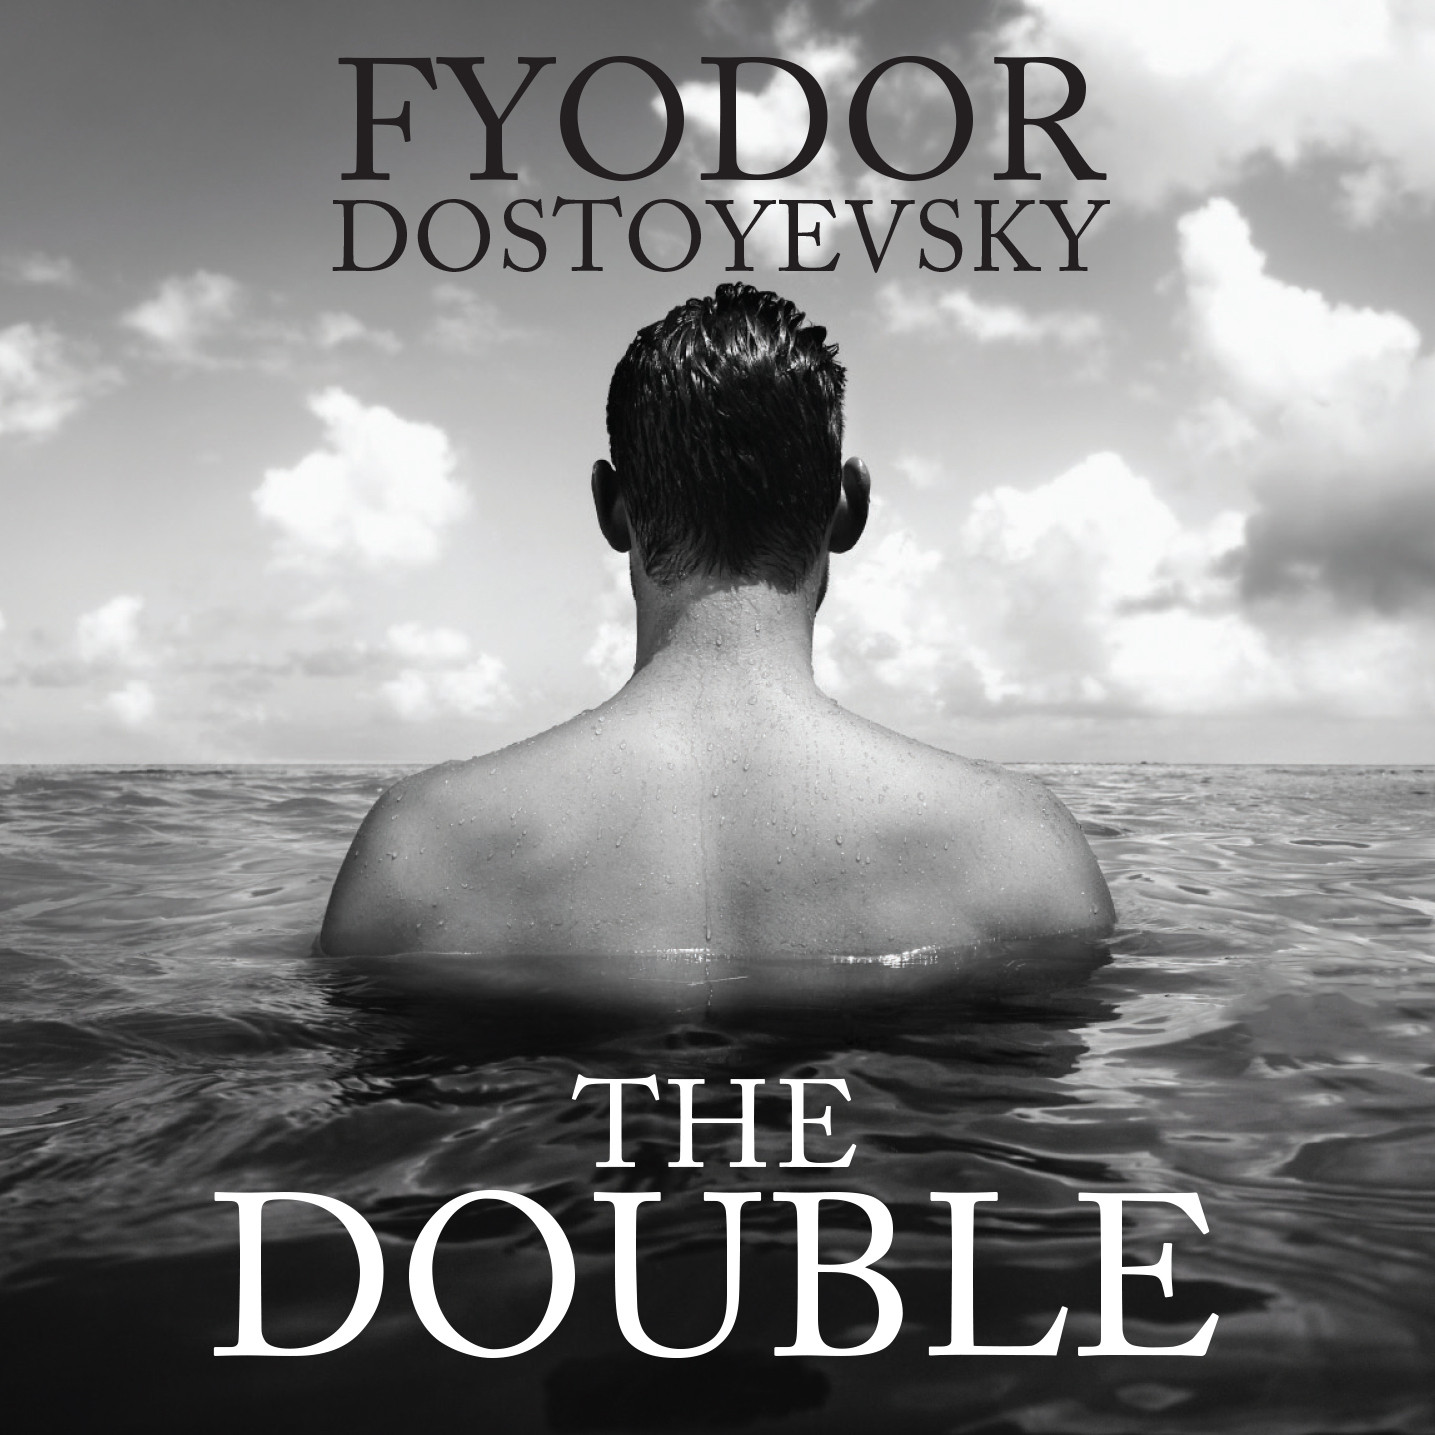 Printable The Double: A Petersburg Poem Audiobook Cover Art